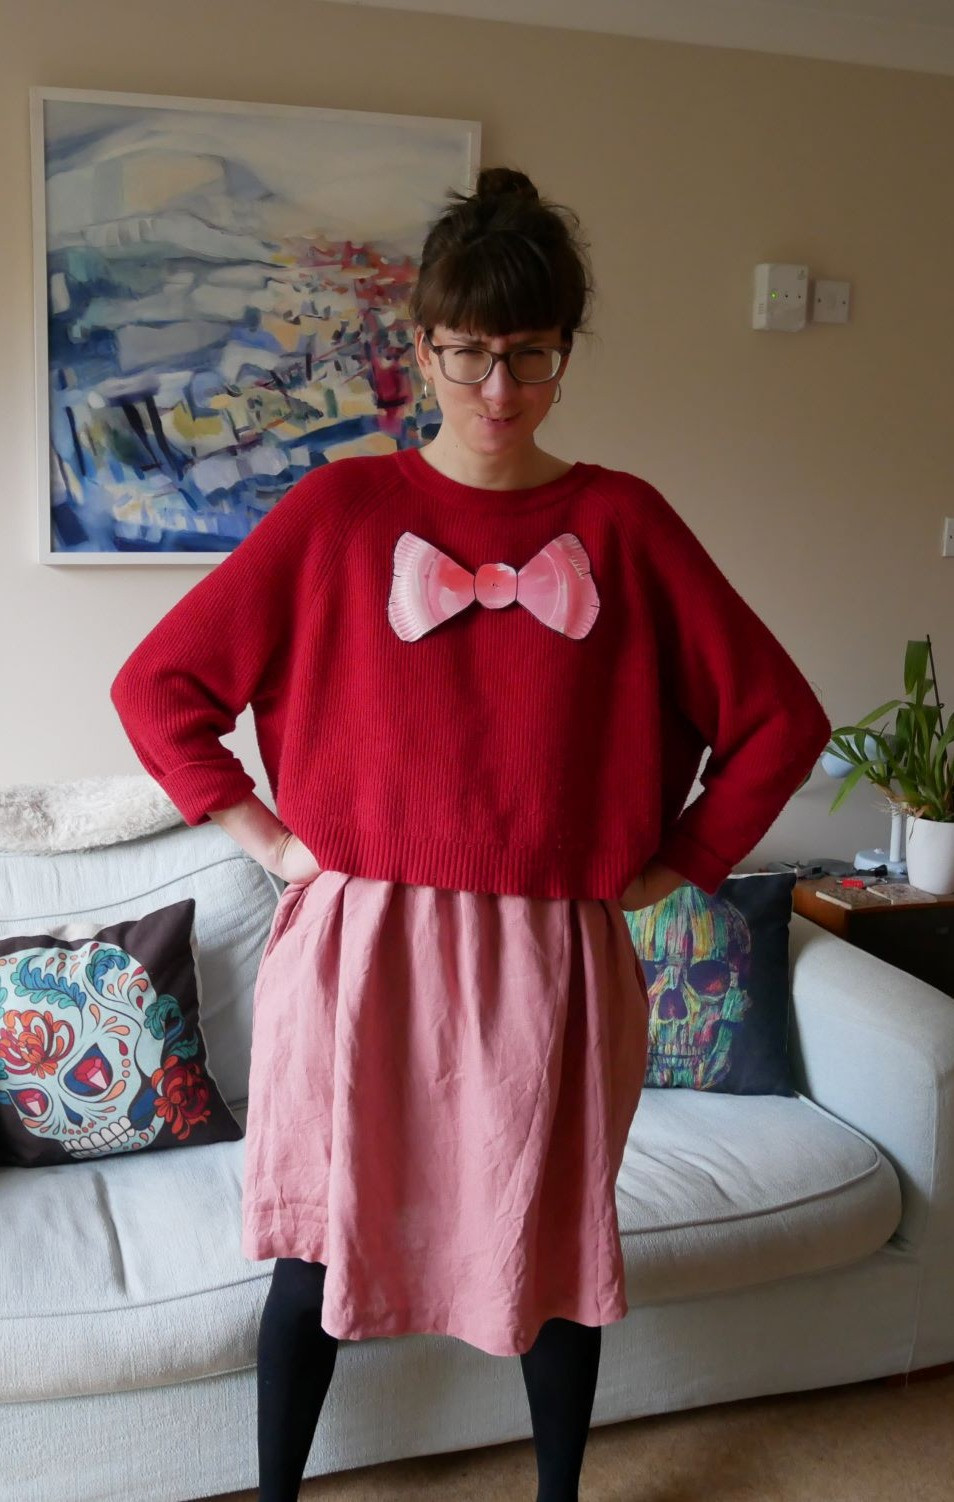 A woman stands with her hands on her hips. She is wearing a red jumper over a pink dress and black tights. She has a big pink bow made out of paper stuck onto her jumper. She is frowning at the camera.